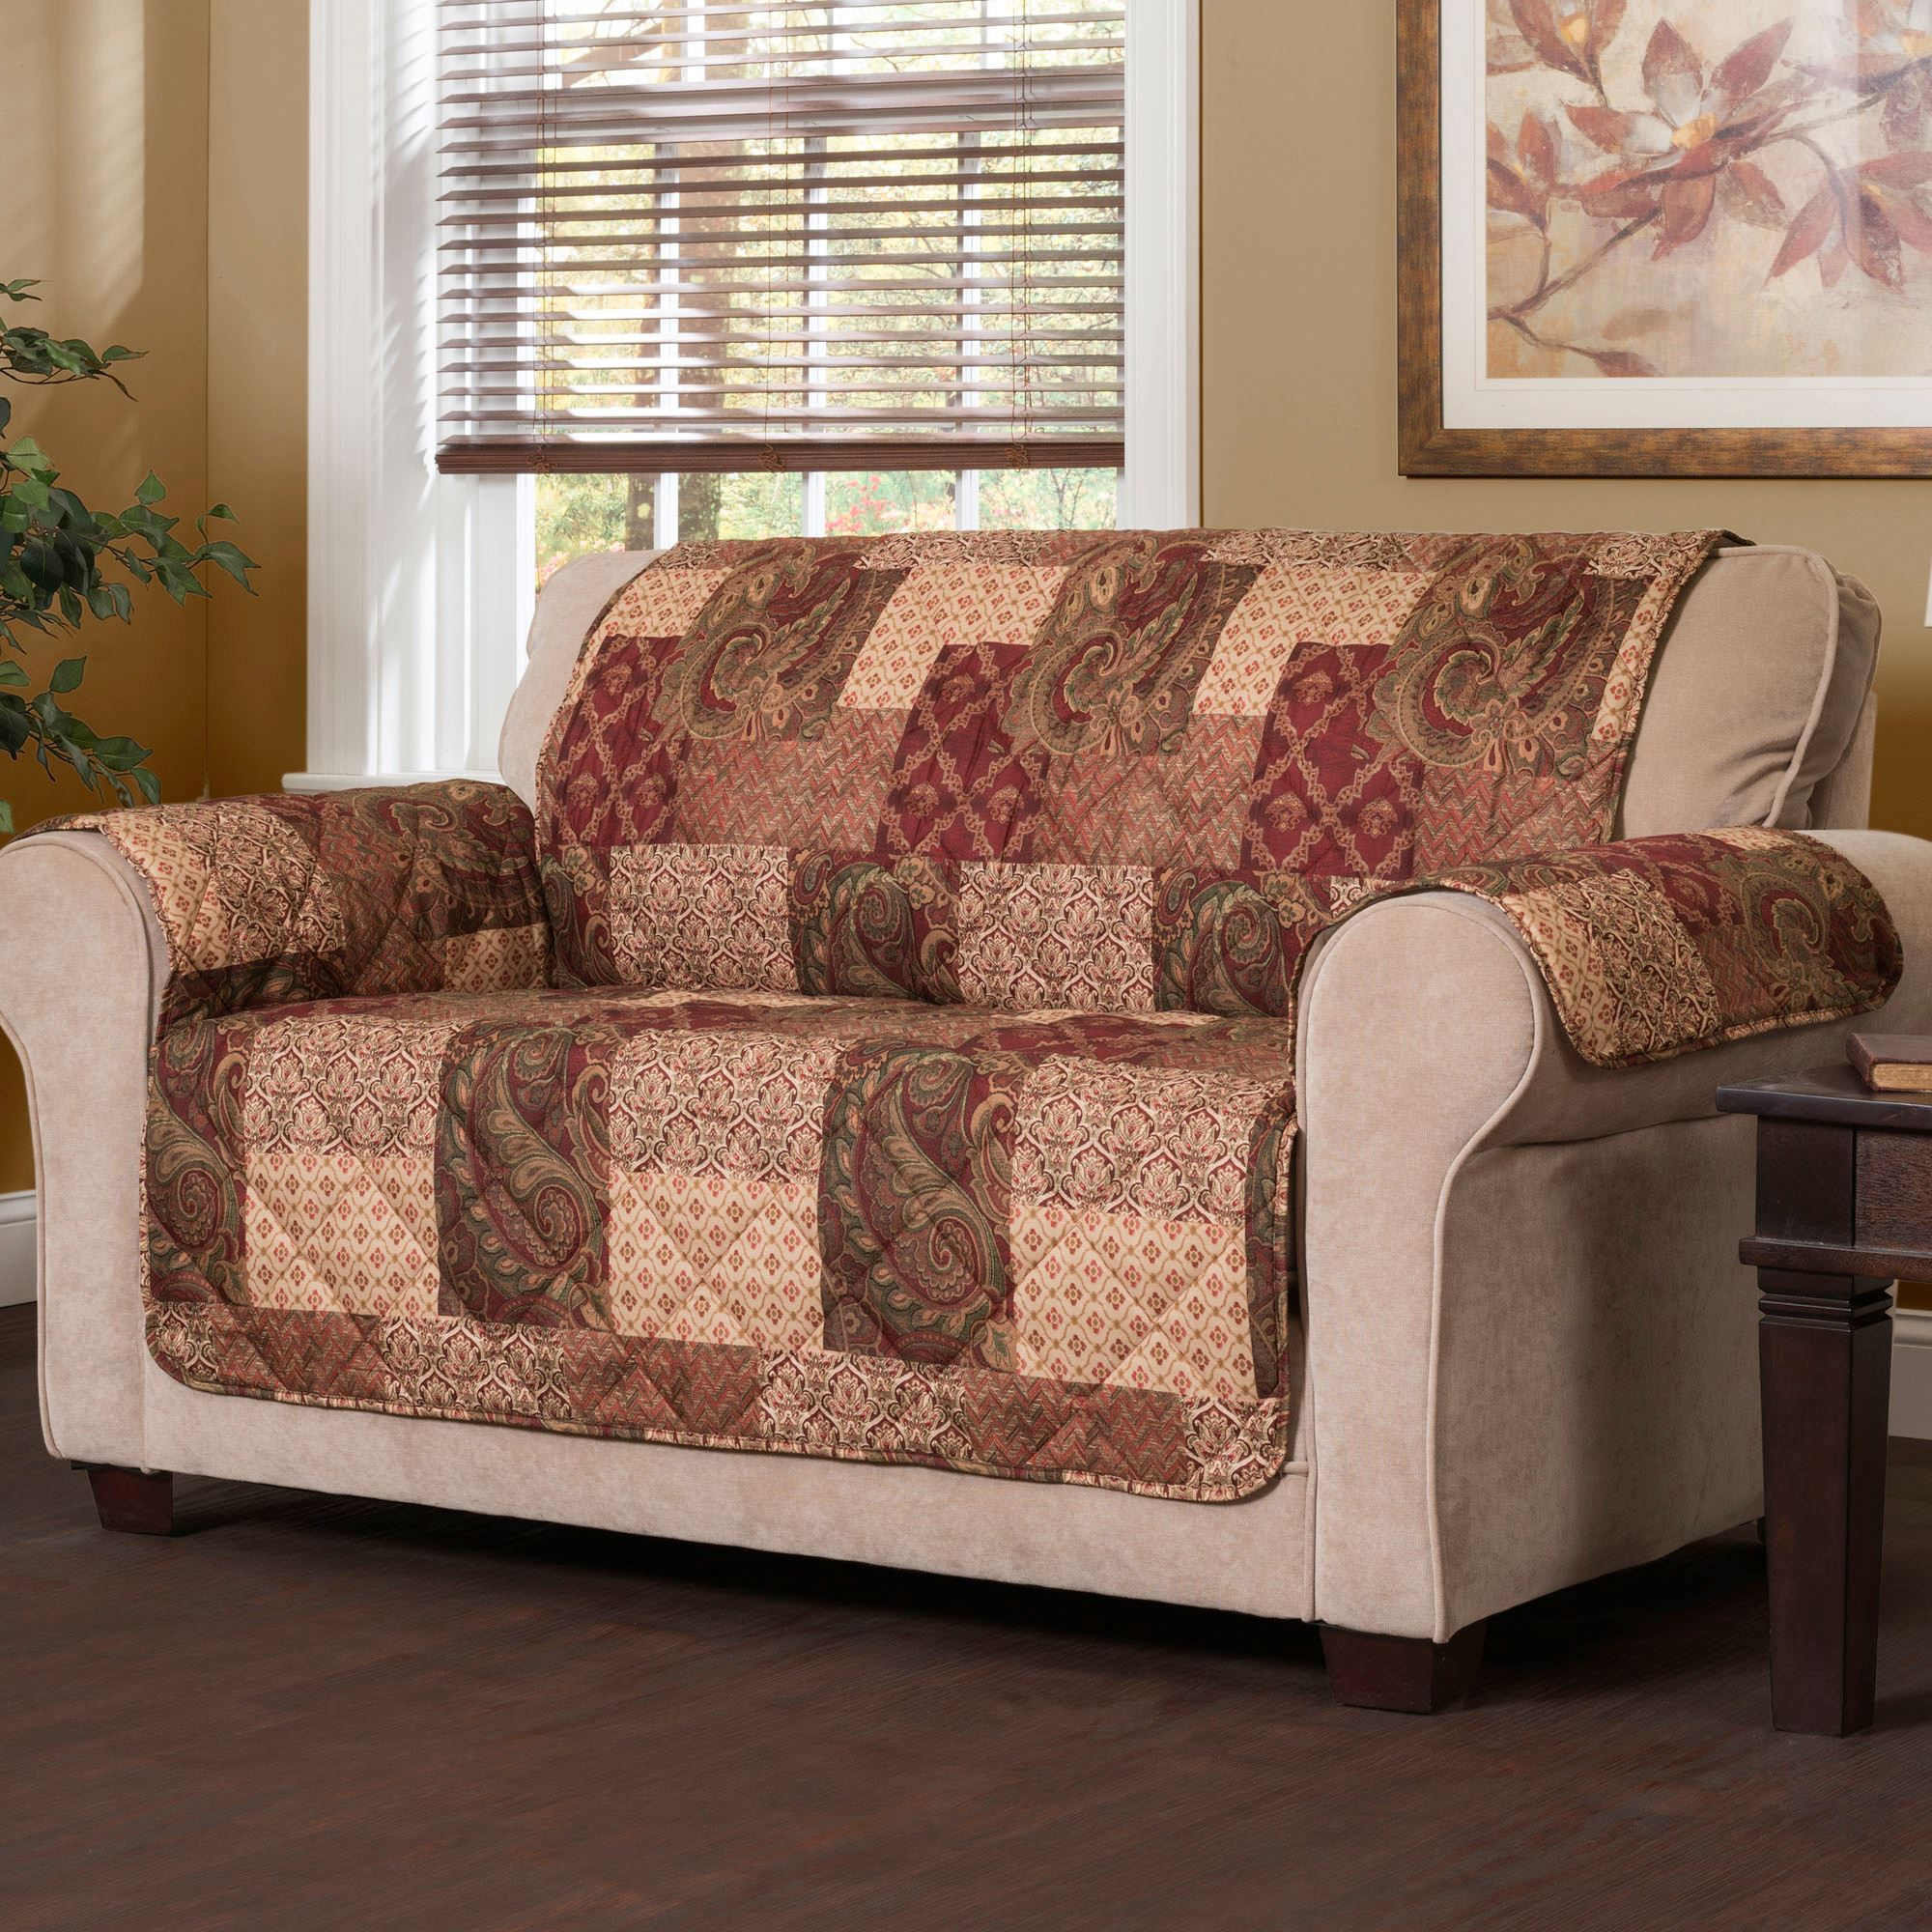 Patches Furniture Protector Multi Warm Loveseat